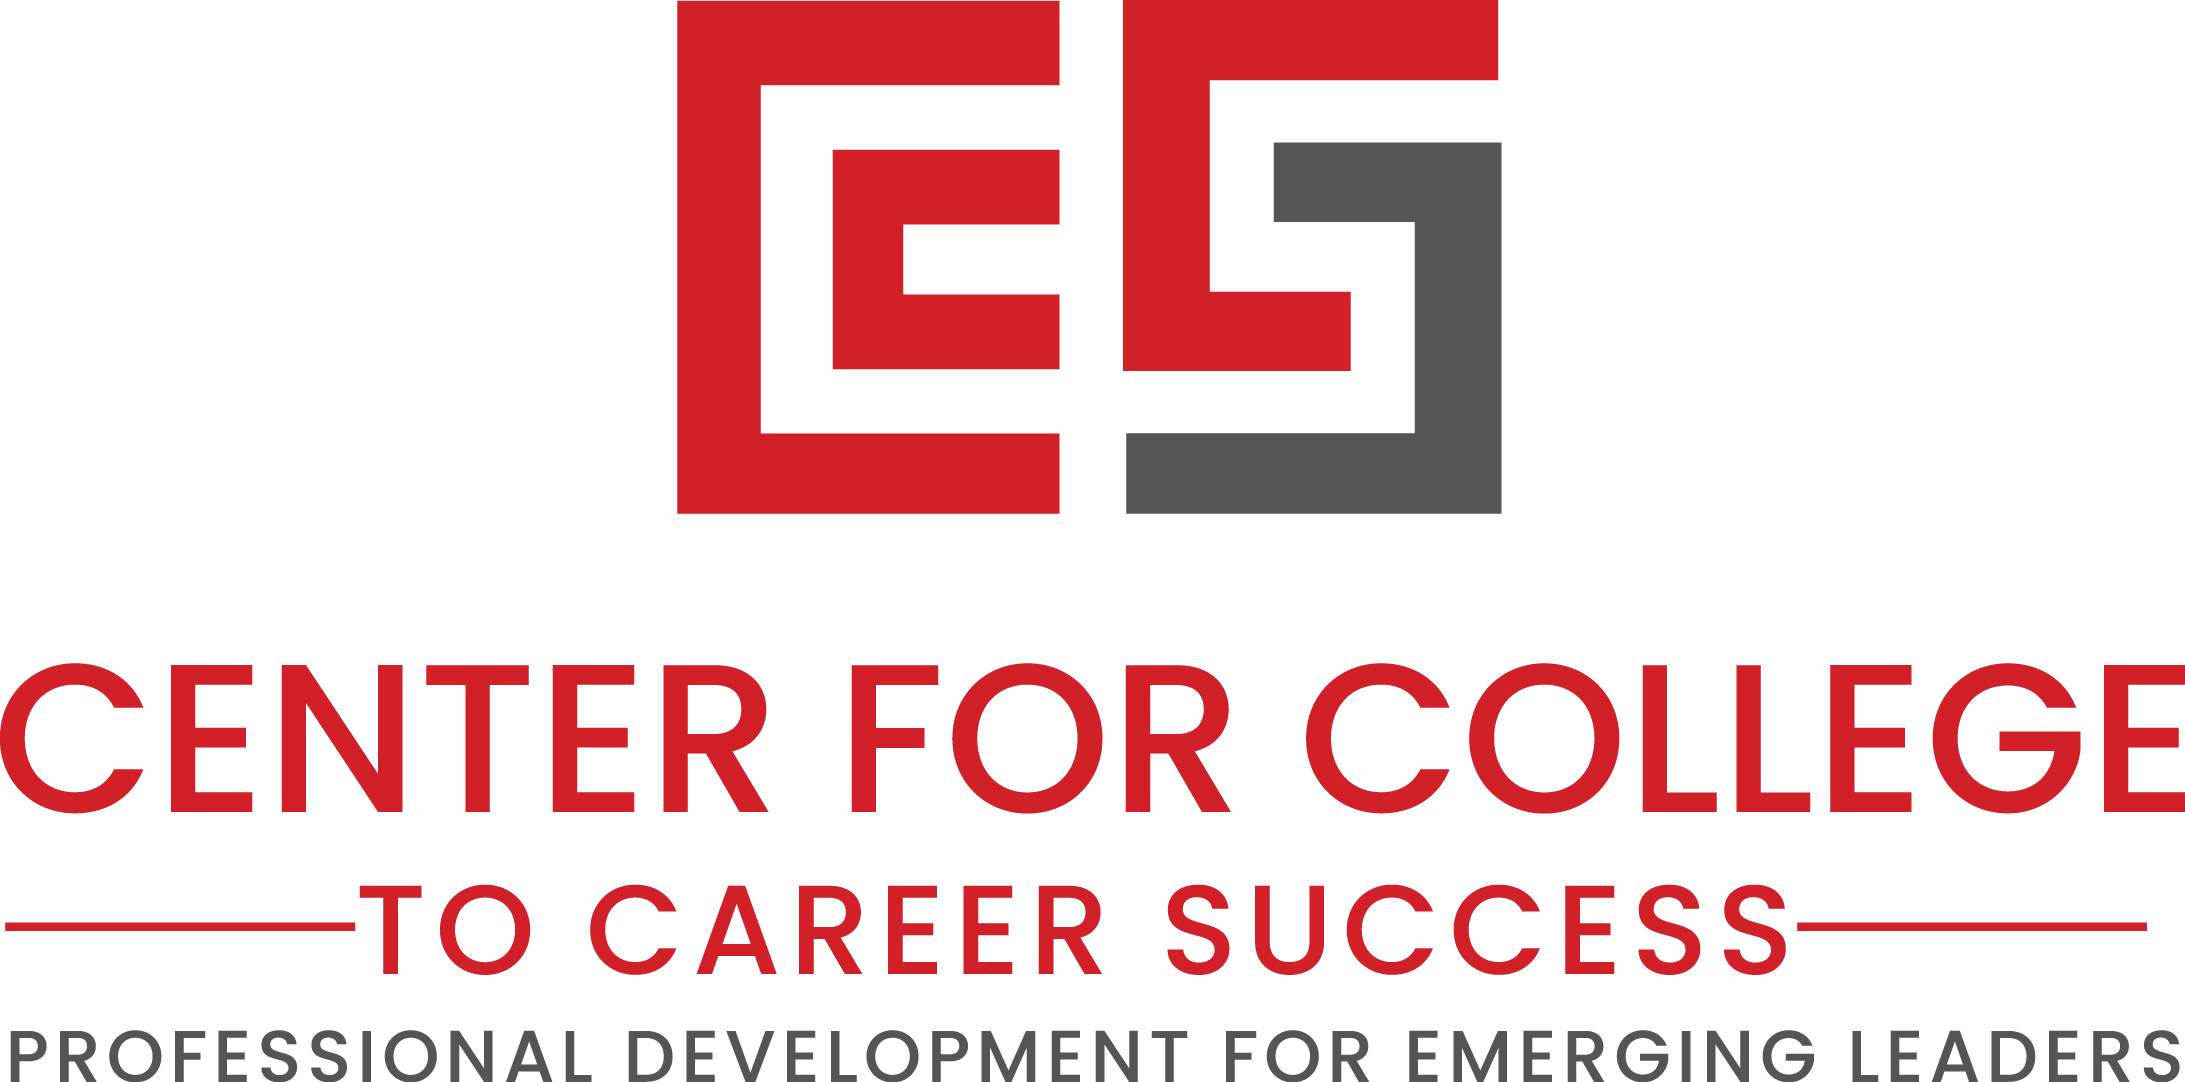 Center for College to Career Success Logo